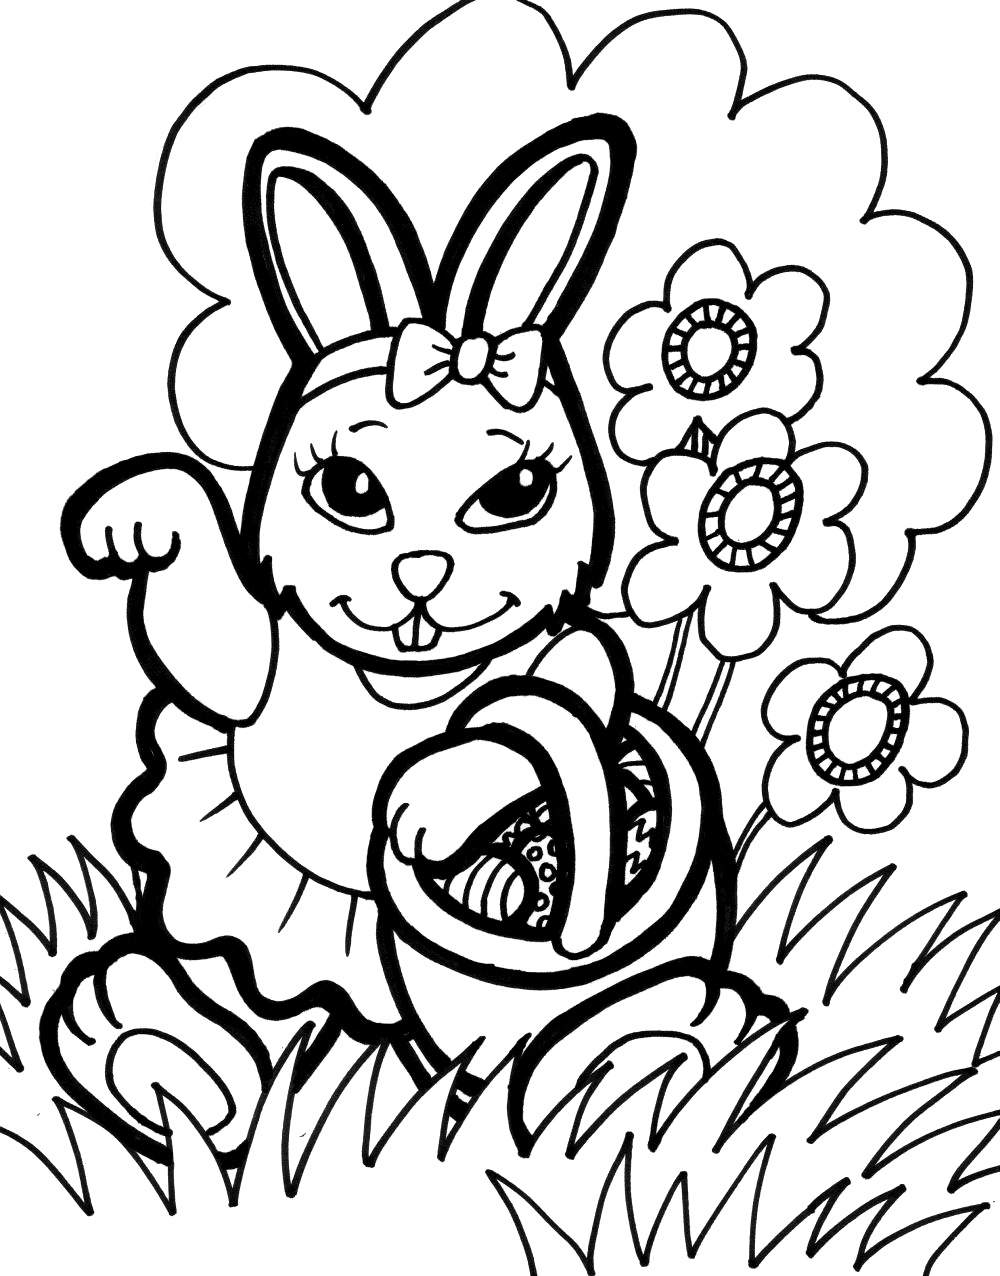 Bunny Coloring Pages - Best Coloring Pages For Kids - Free Printable Bunny Pictures